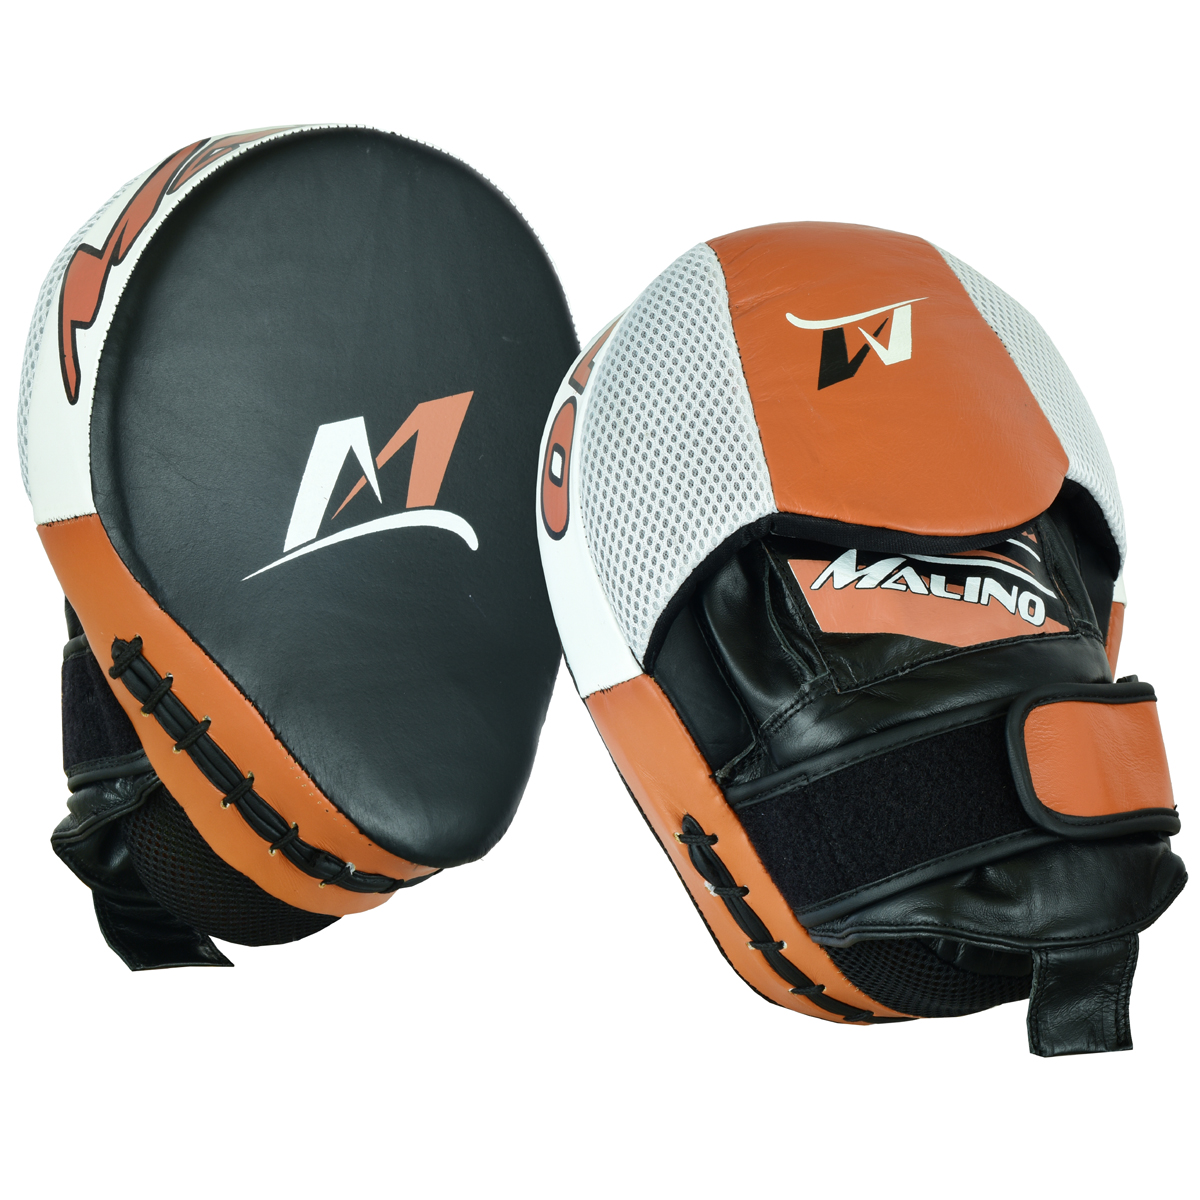 Malino Focus Pads Black-White-Orange